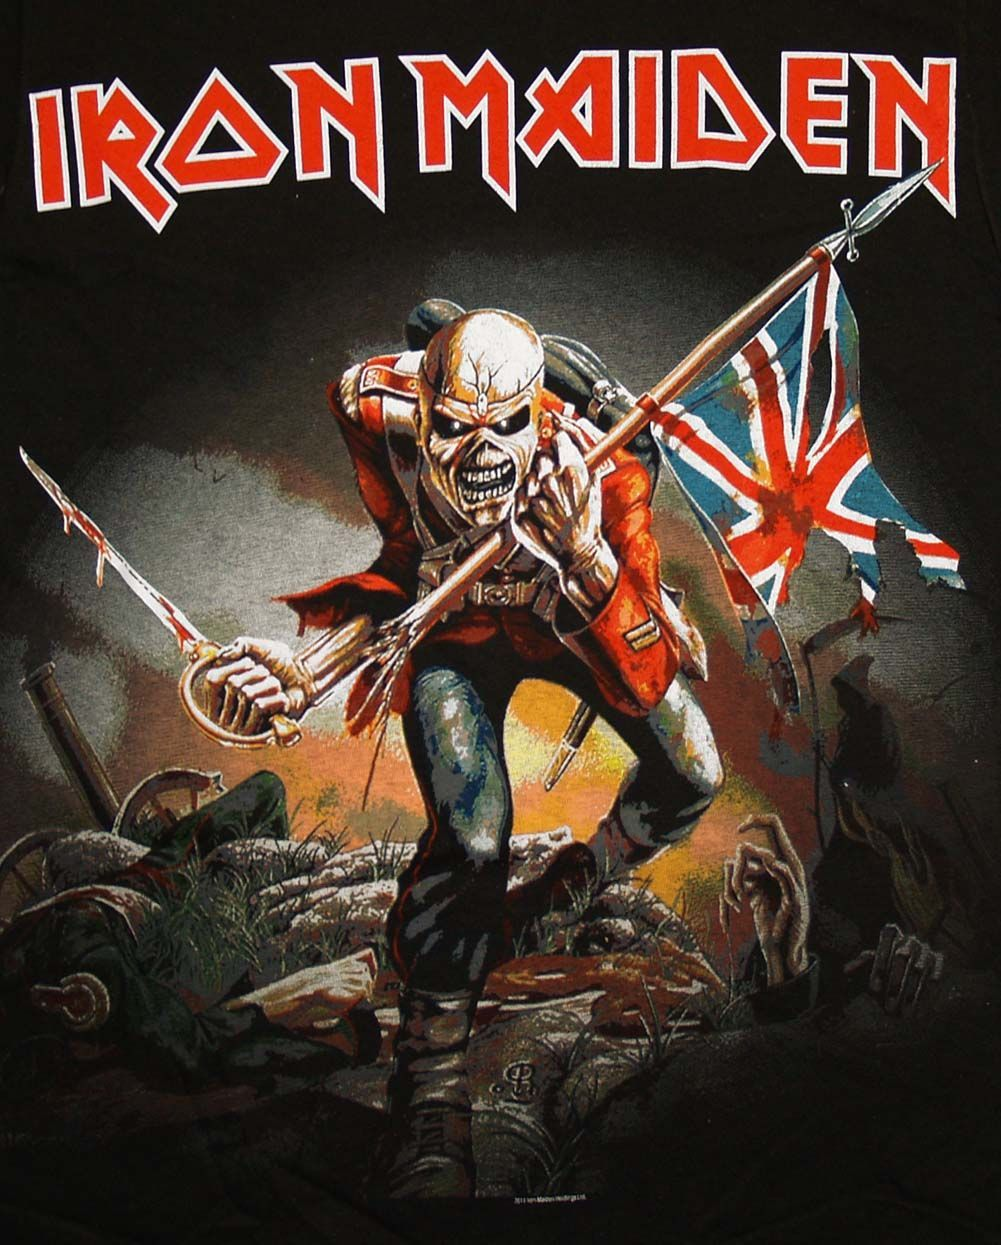 Iron Maiden 4k Android Wallpapers - Wallpaper Cave